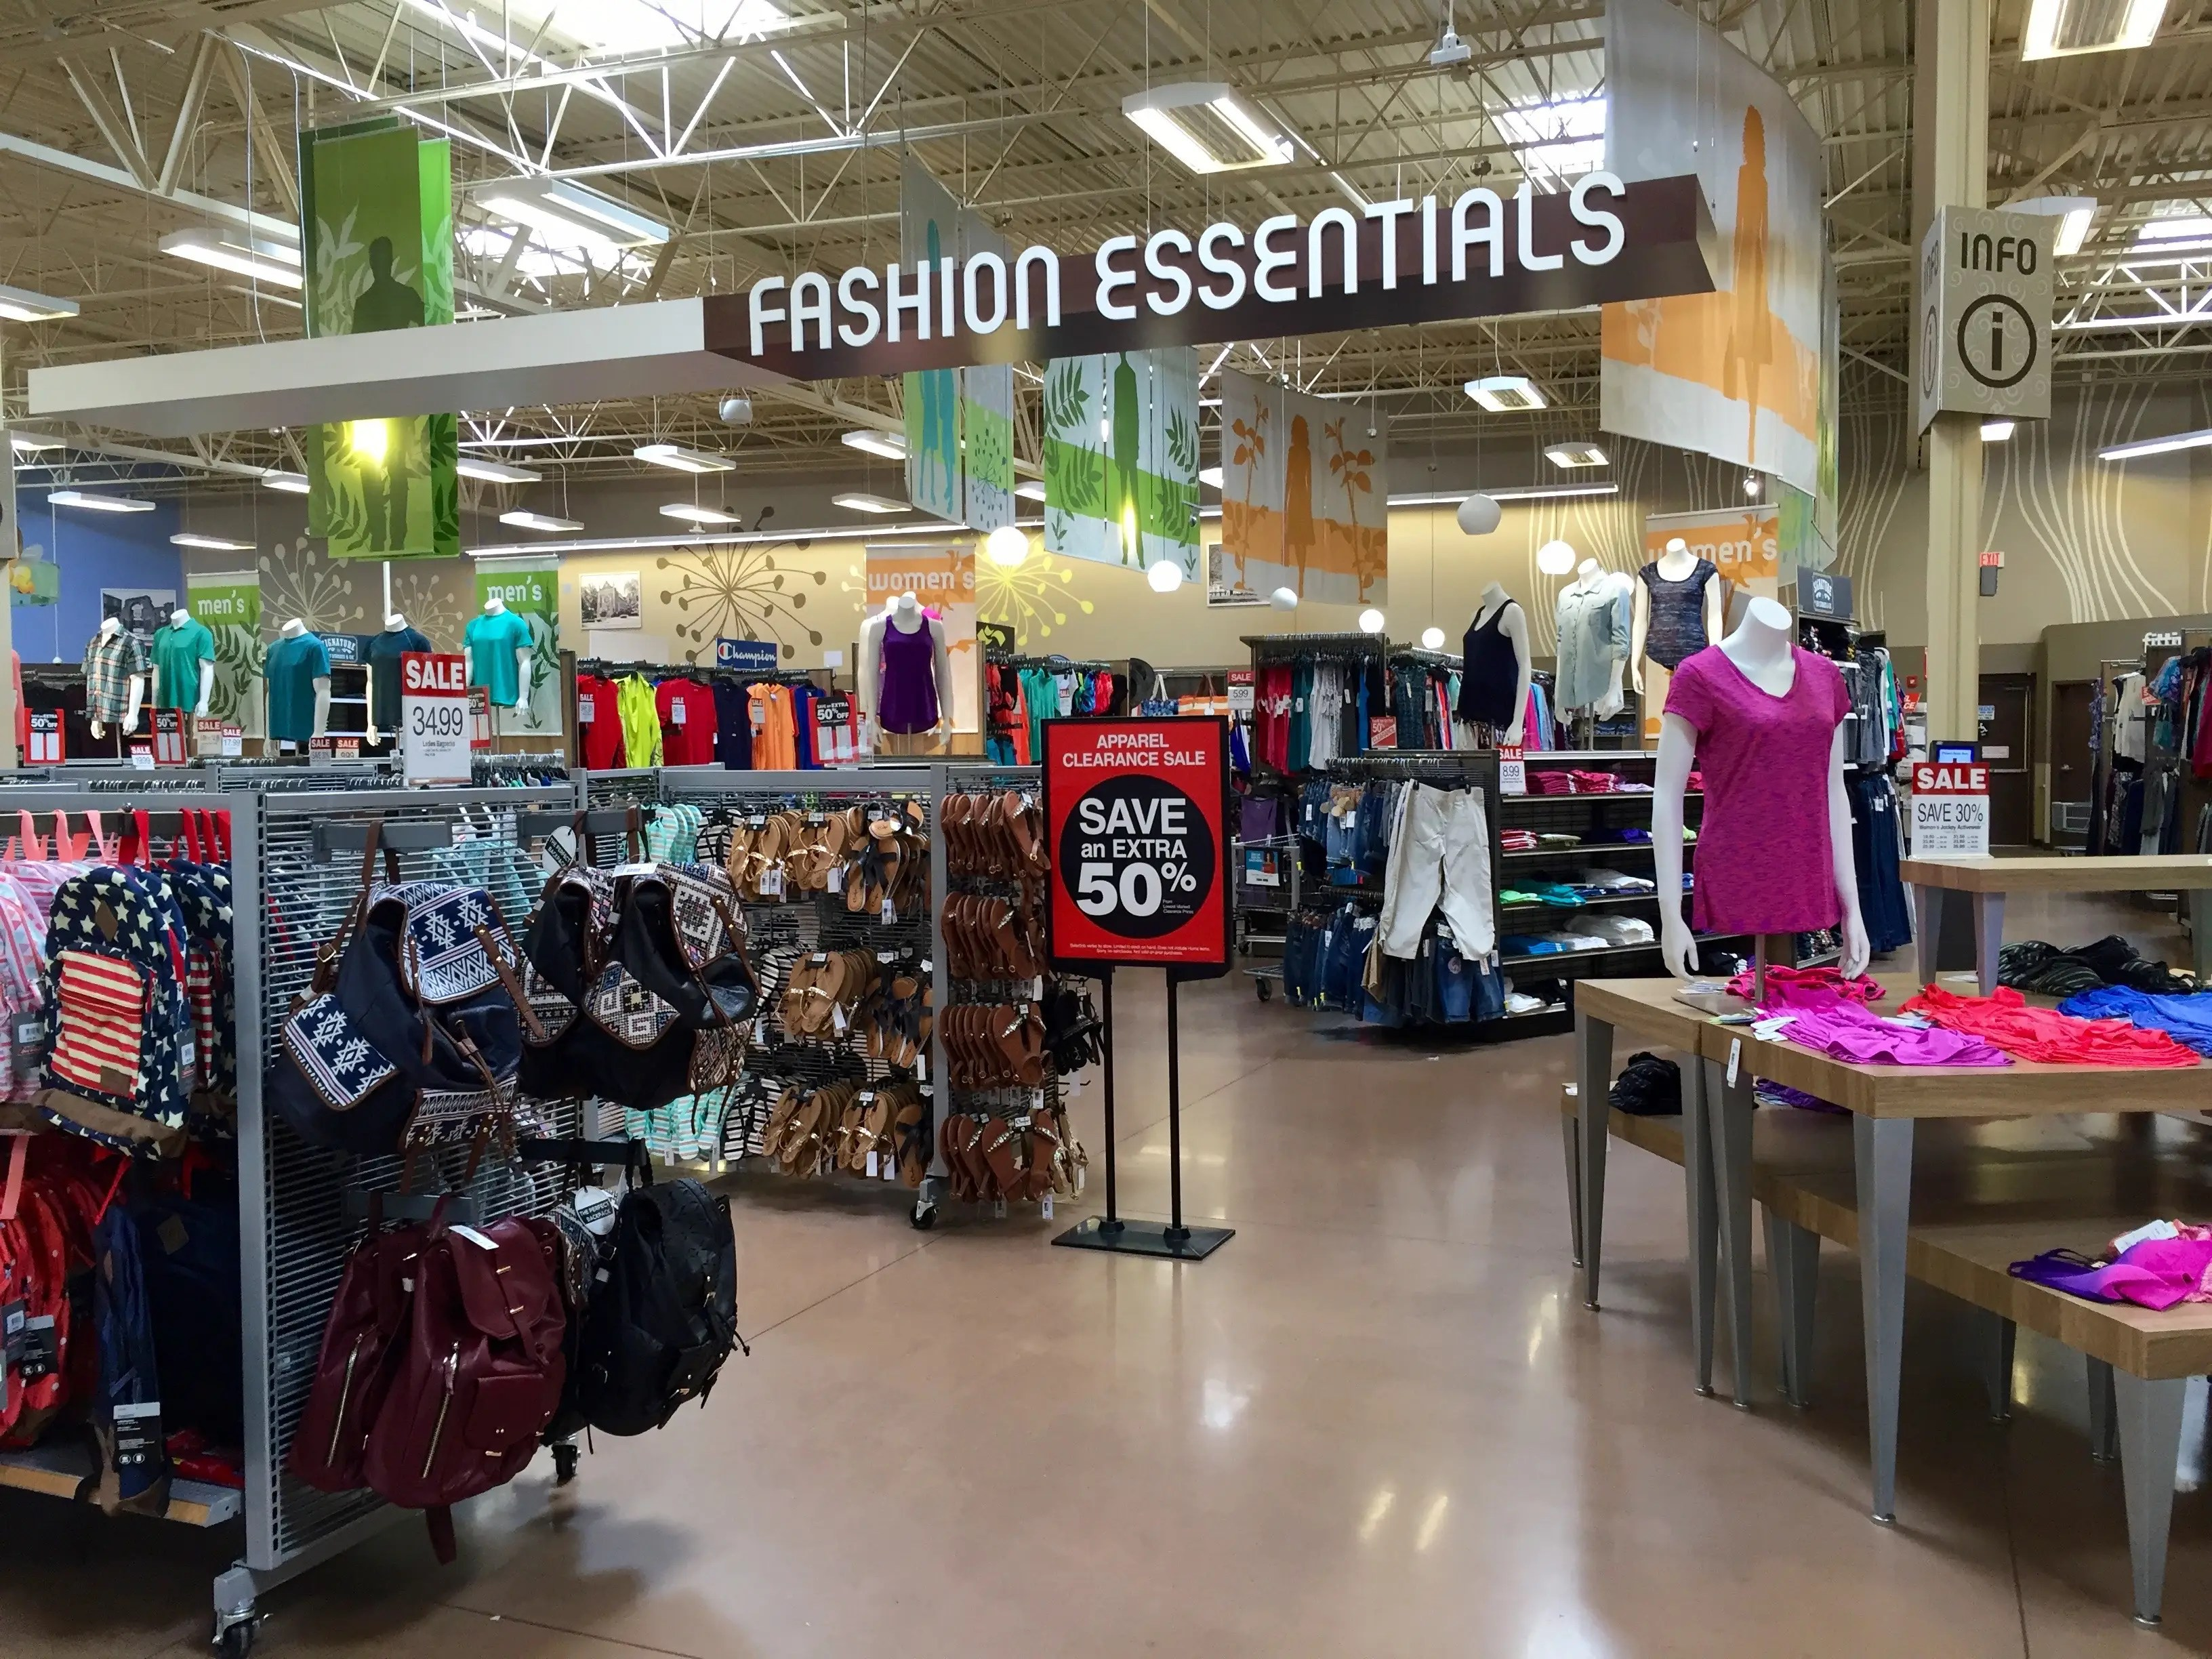 The fashion department offers clothes and accessories. It's nearly the same size as the produce department.